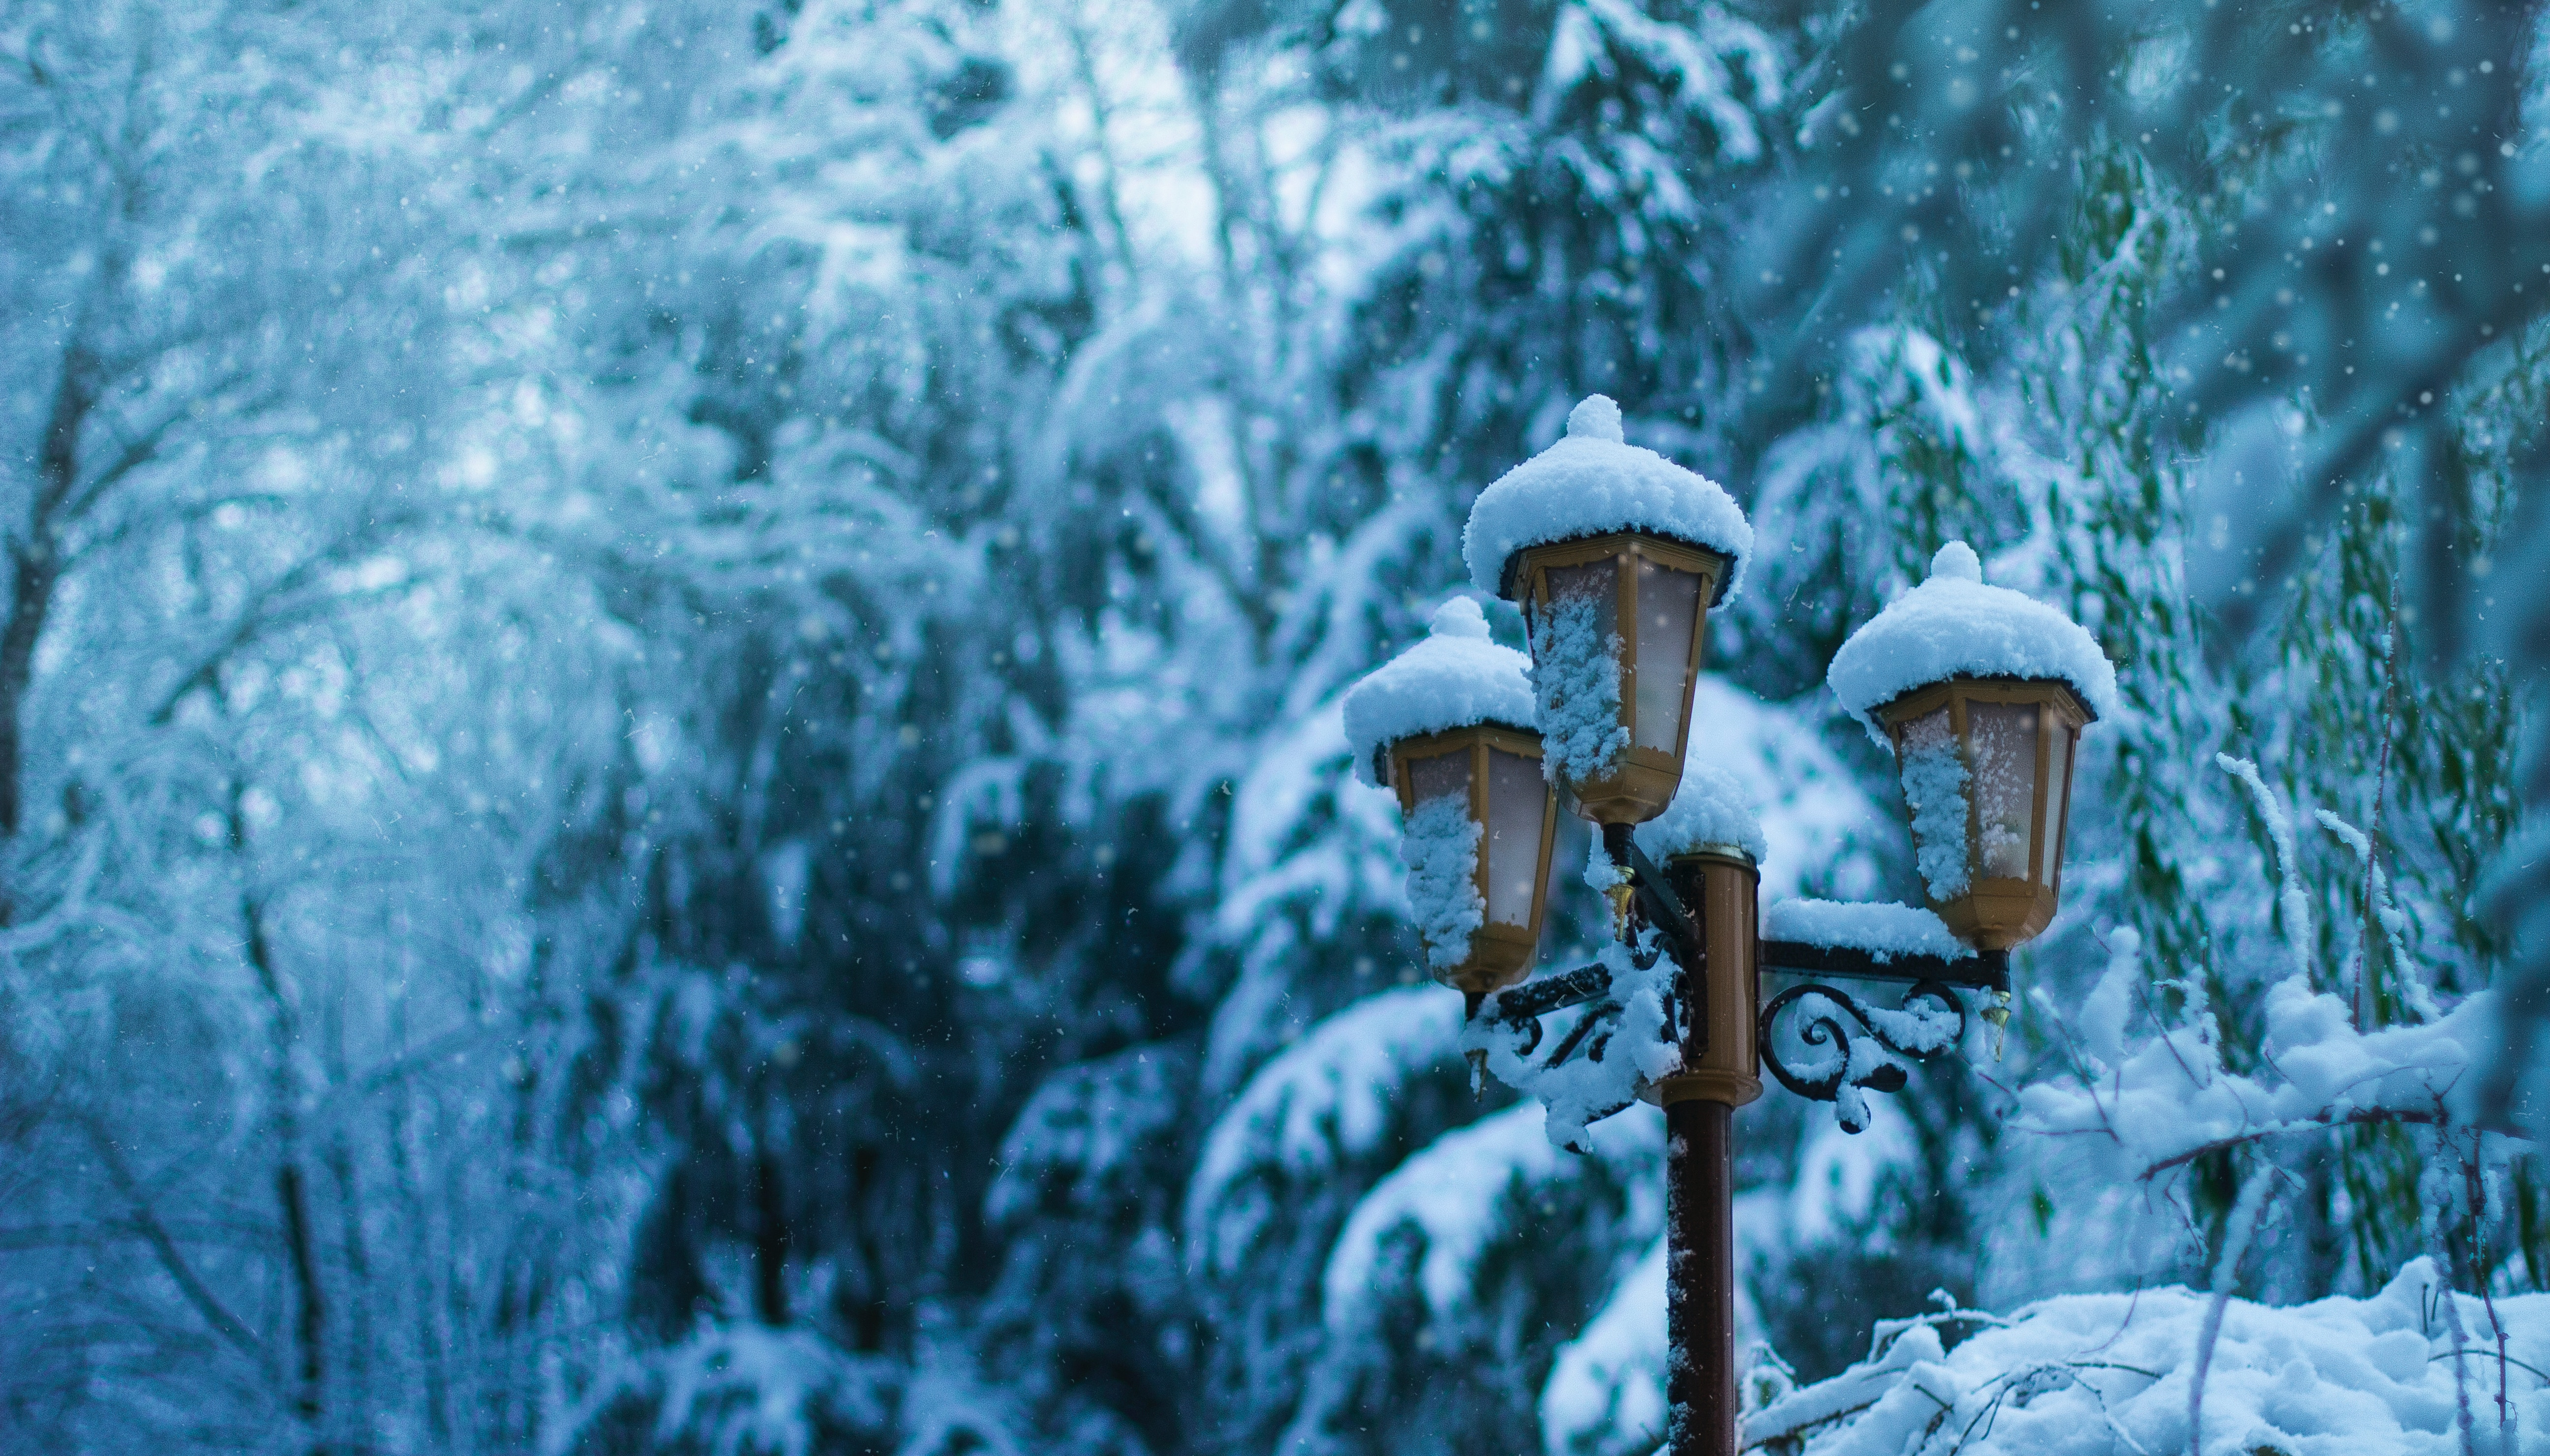 137705 Screensavers and Wallpapers Lamp for phone. Download Winter, Snow, Miscellanea, Miscellaneous, Lamp, Lantern, Pillar, Post pictures for free